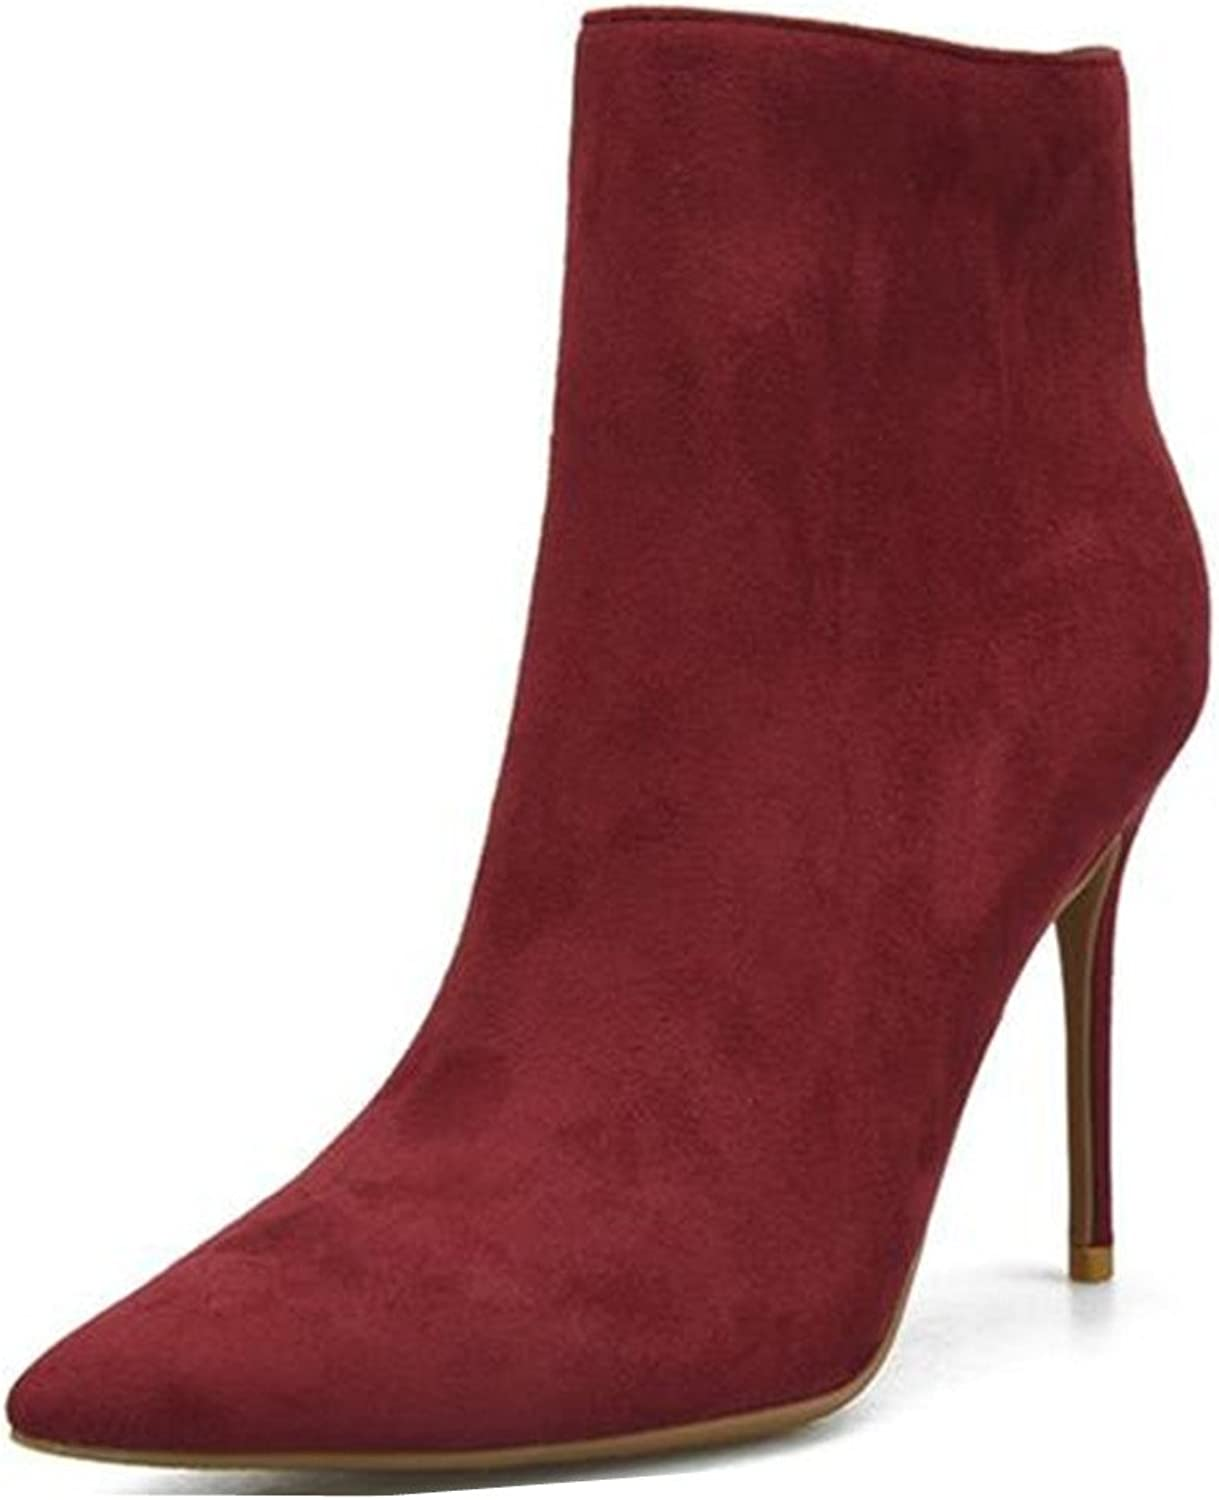 XIUWU Women's Stiletto Ankle Boots Dinner Party Pumps